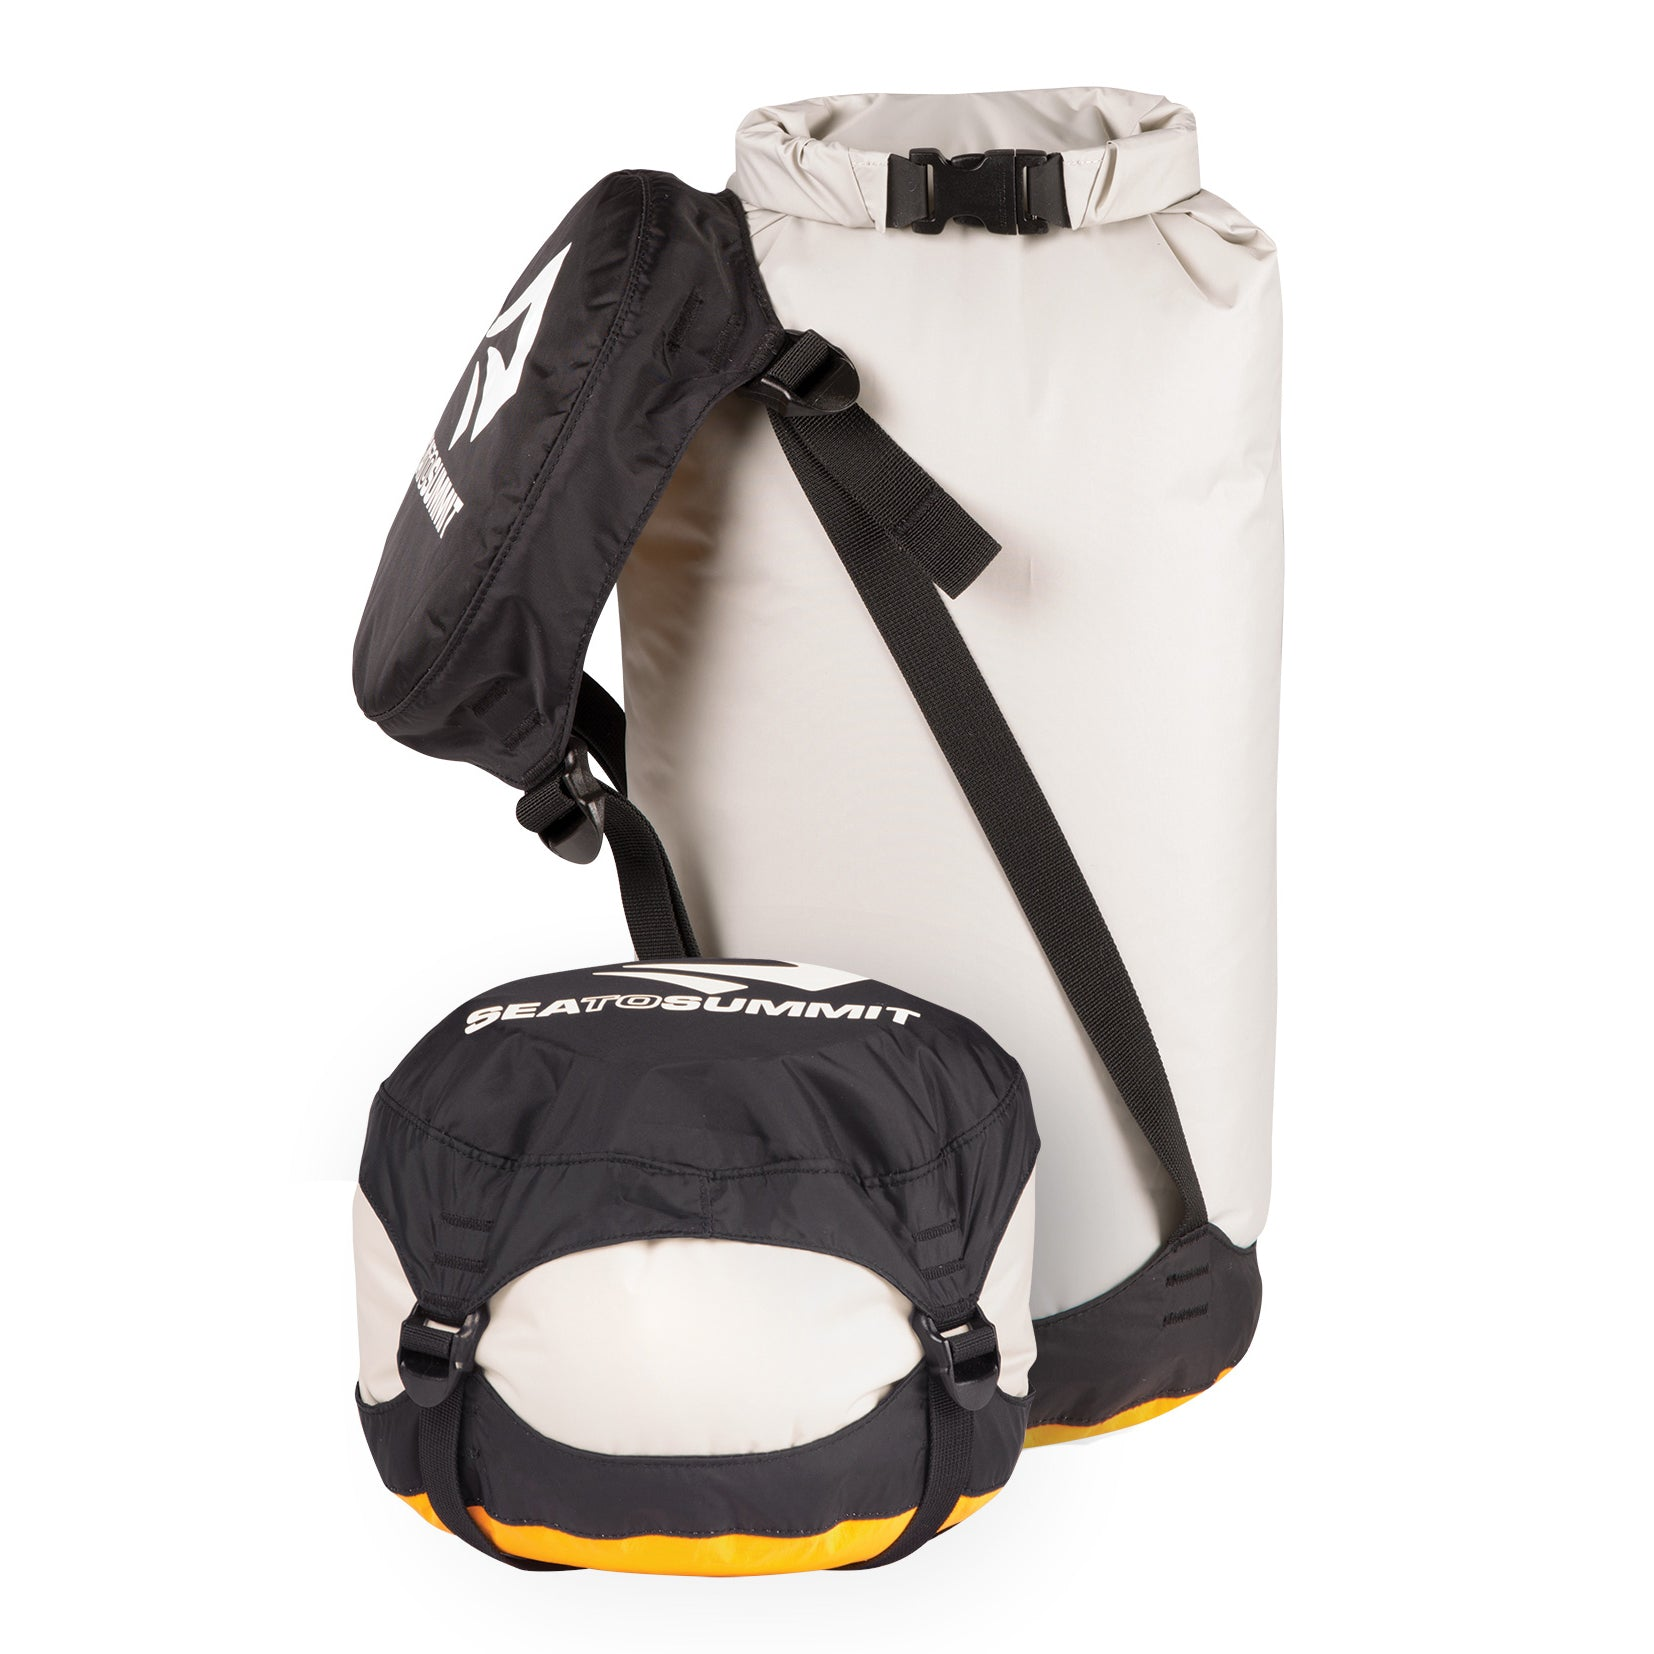 eVent Compression Dry Bag _ sleeping bag compression sack _ 14 liter